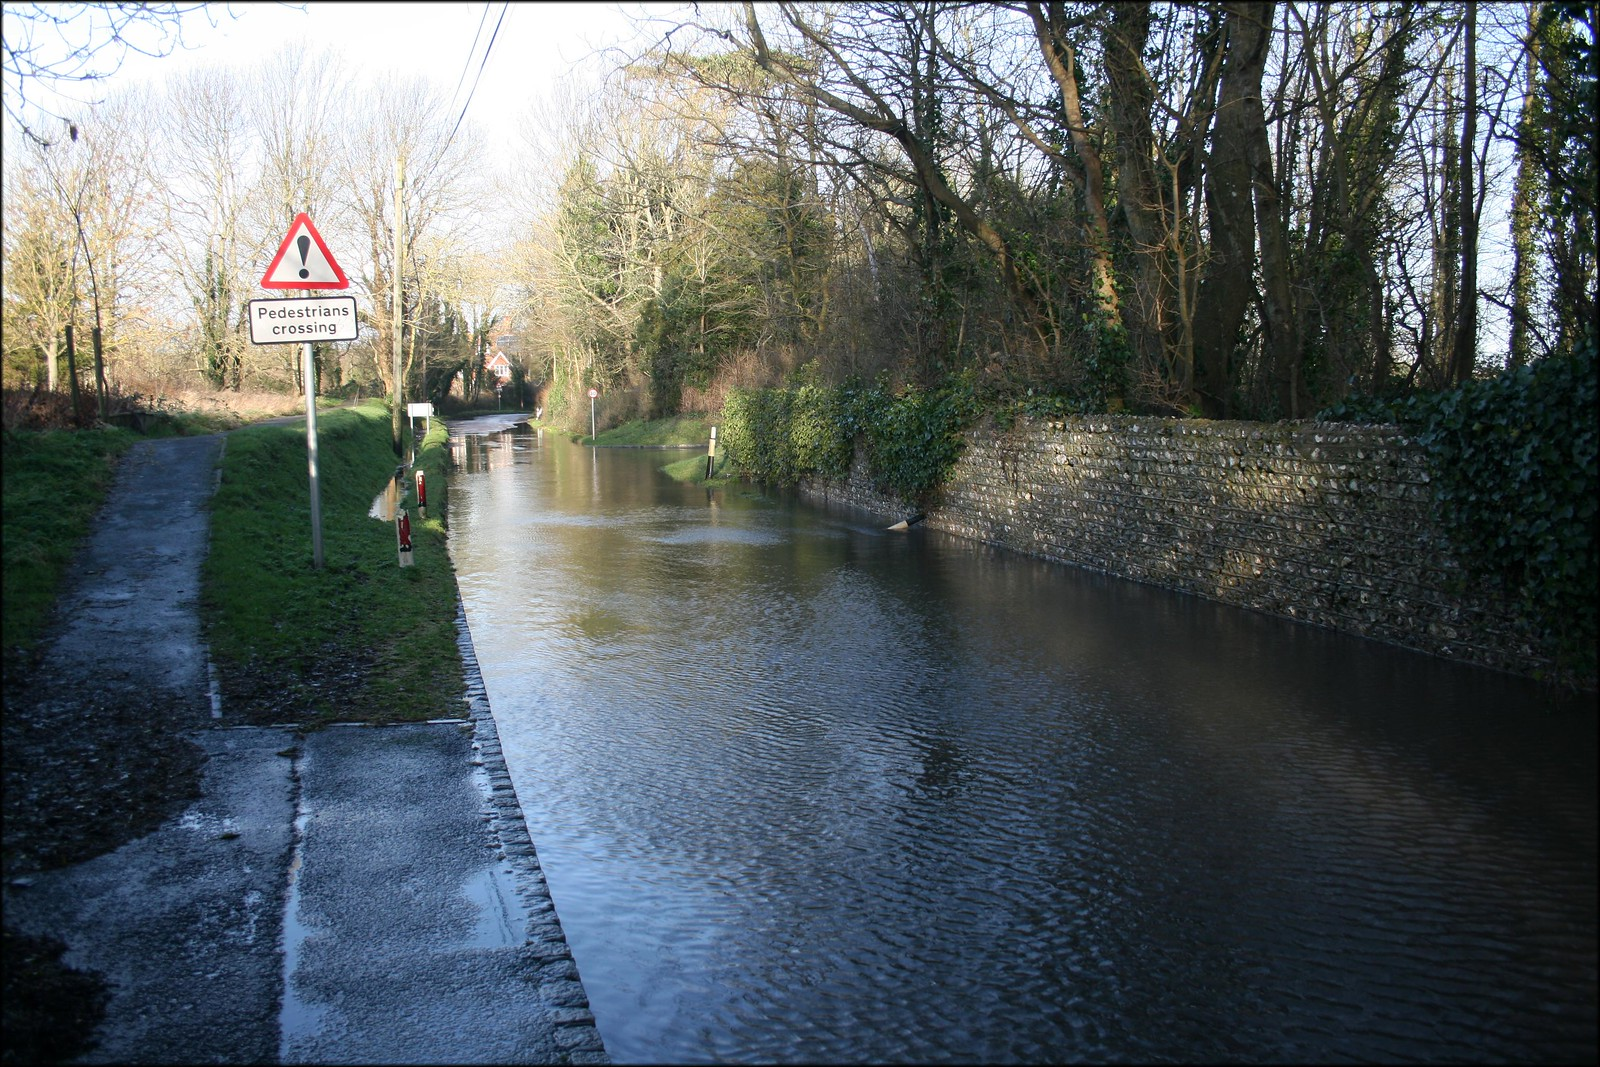 Firle Flooded street in Firle, East Sussex. I was glad the pavement was raised here.